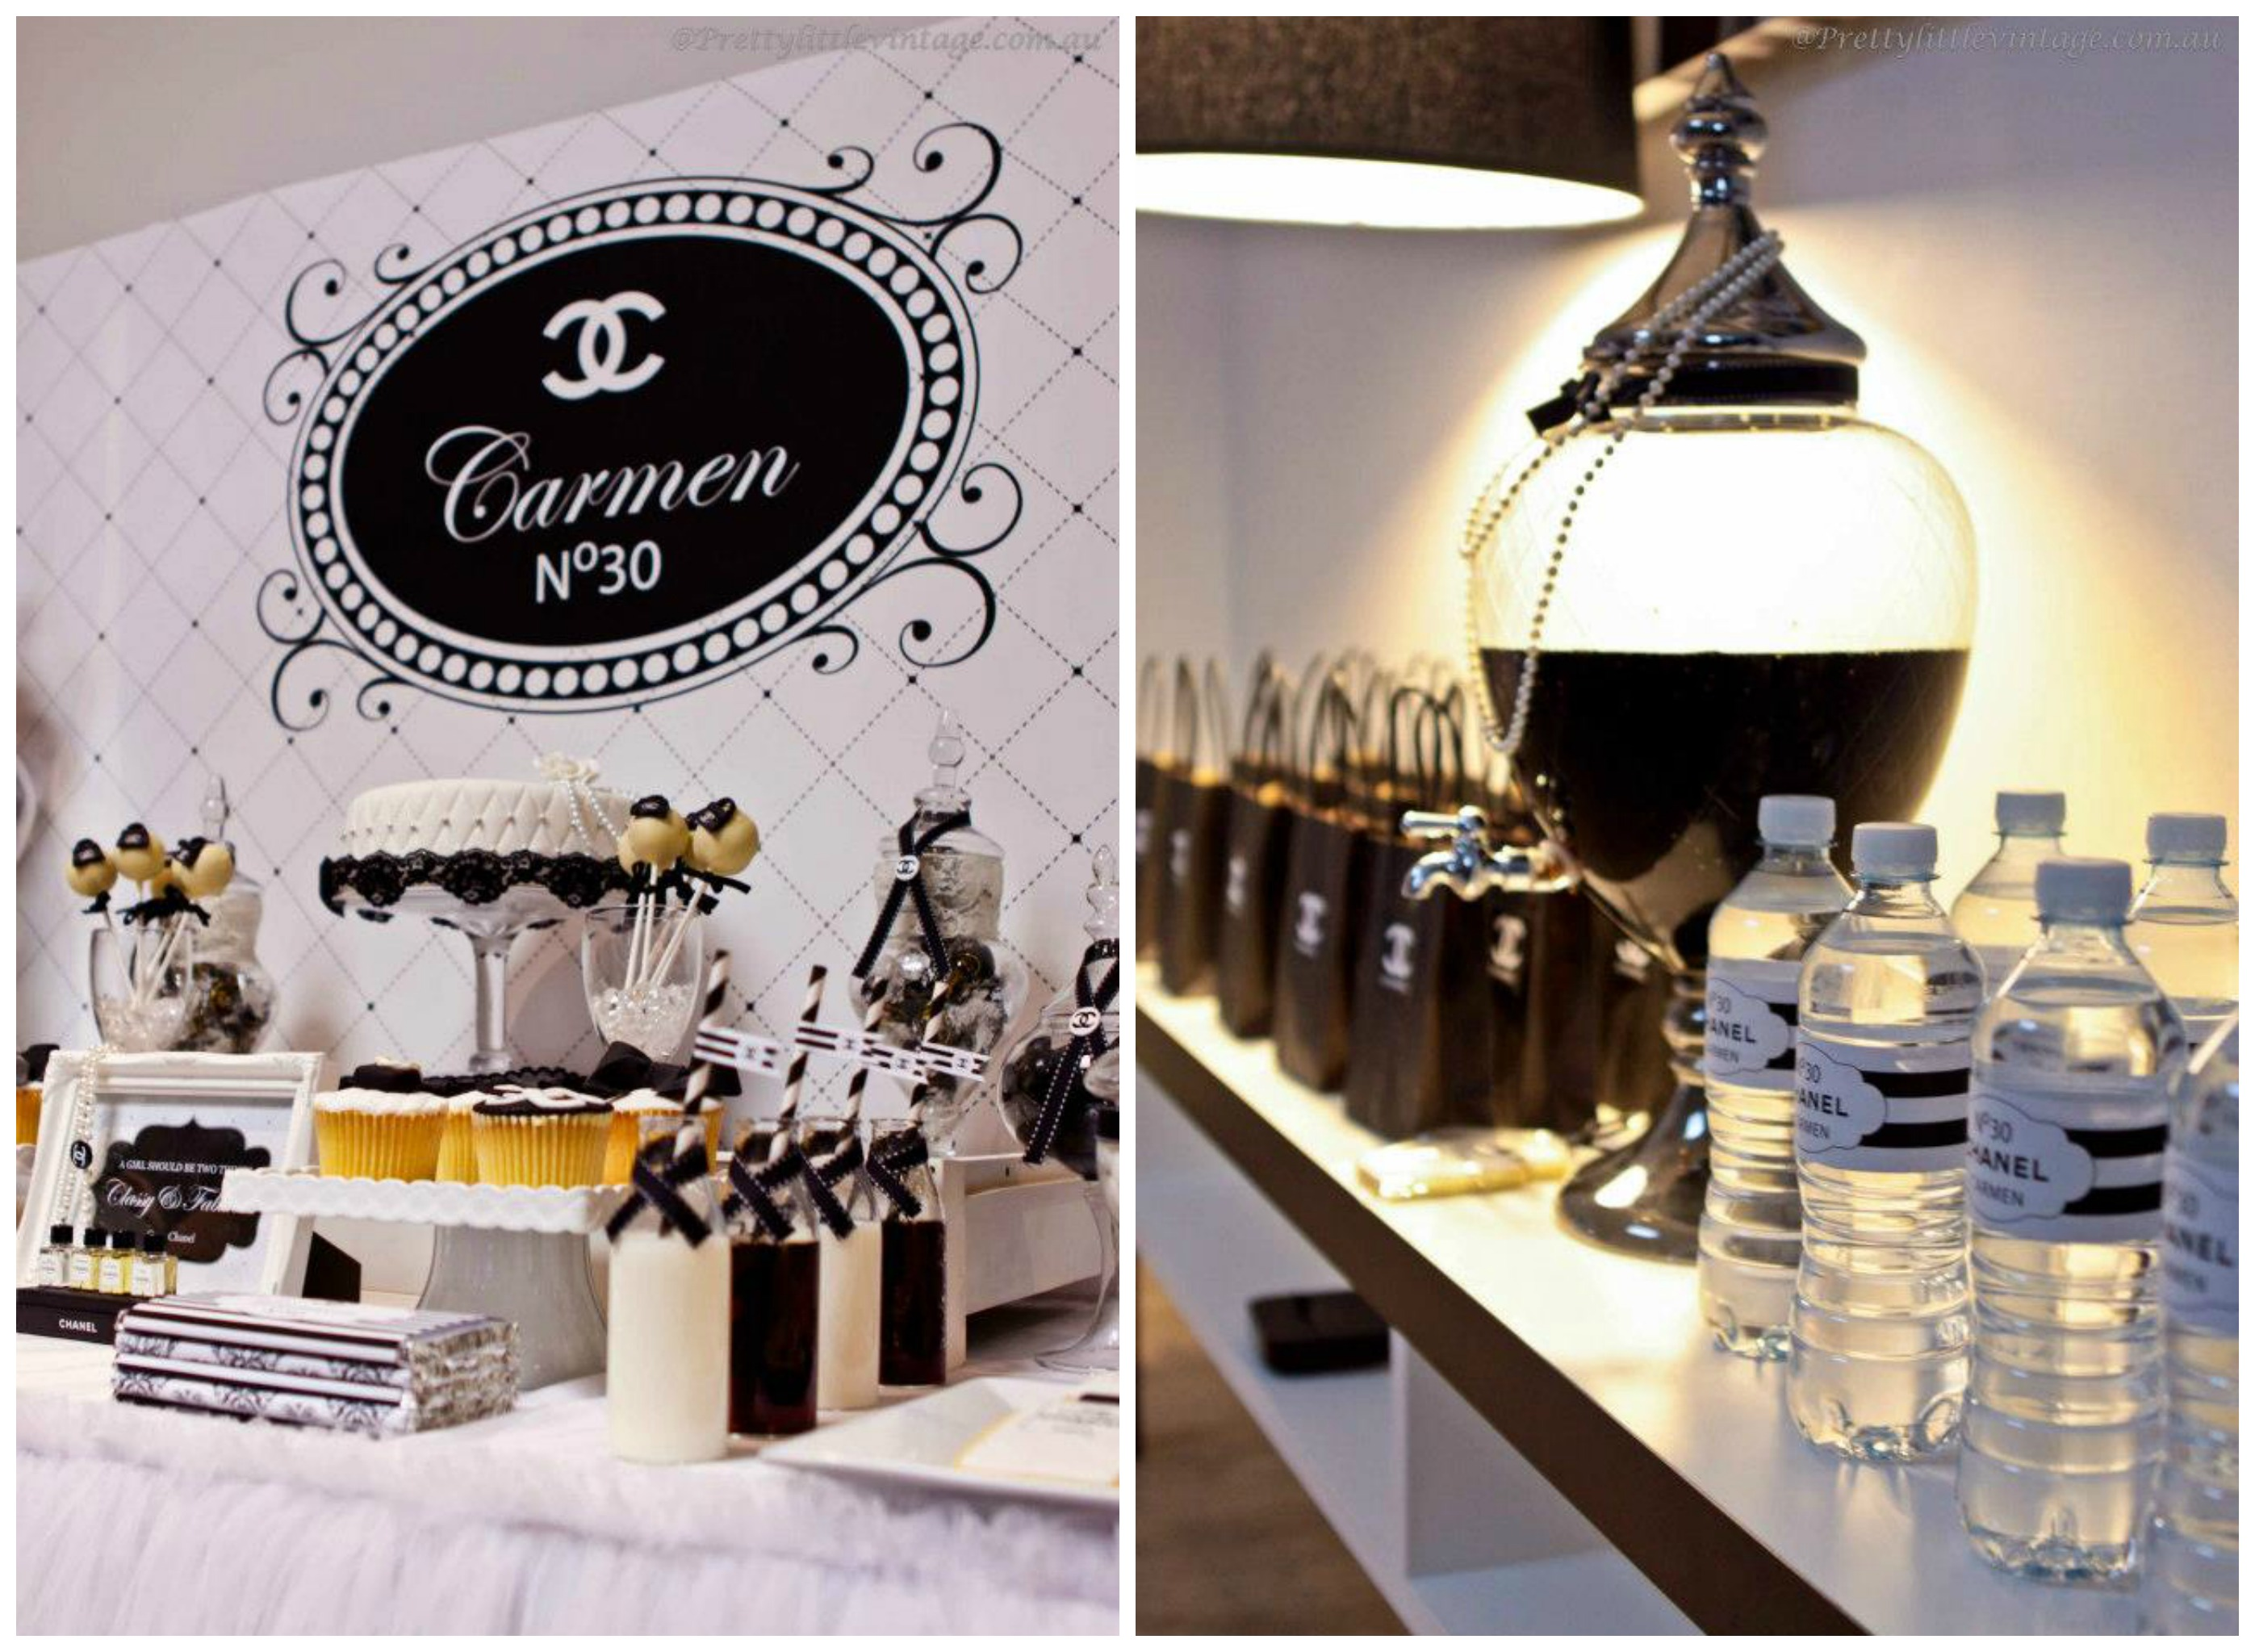 If You Are Looking To Organize A Chanel Inspired Party, This 30th Birthday  Party Will